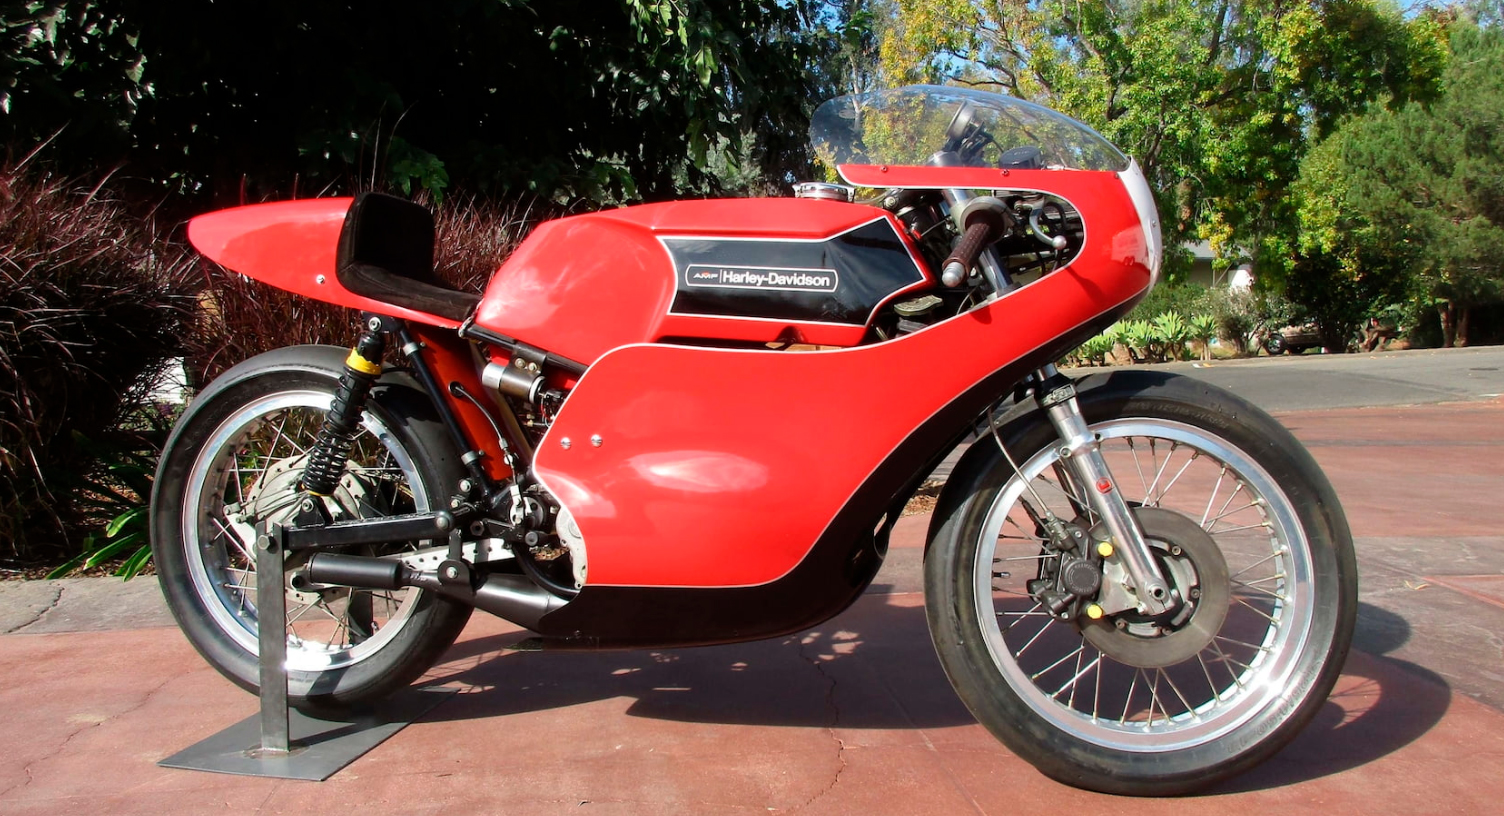 One of the RR250s that was sold.